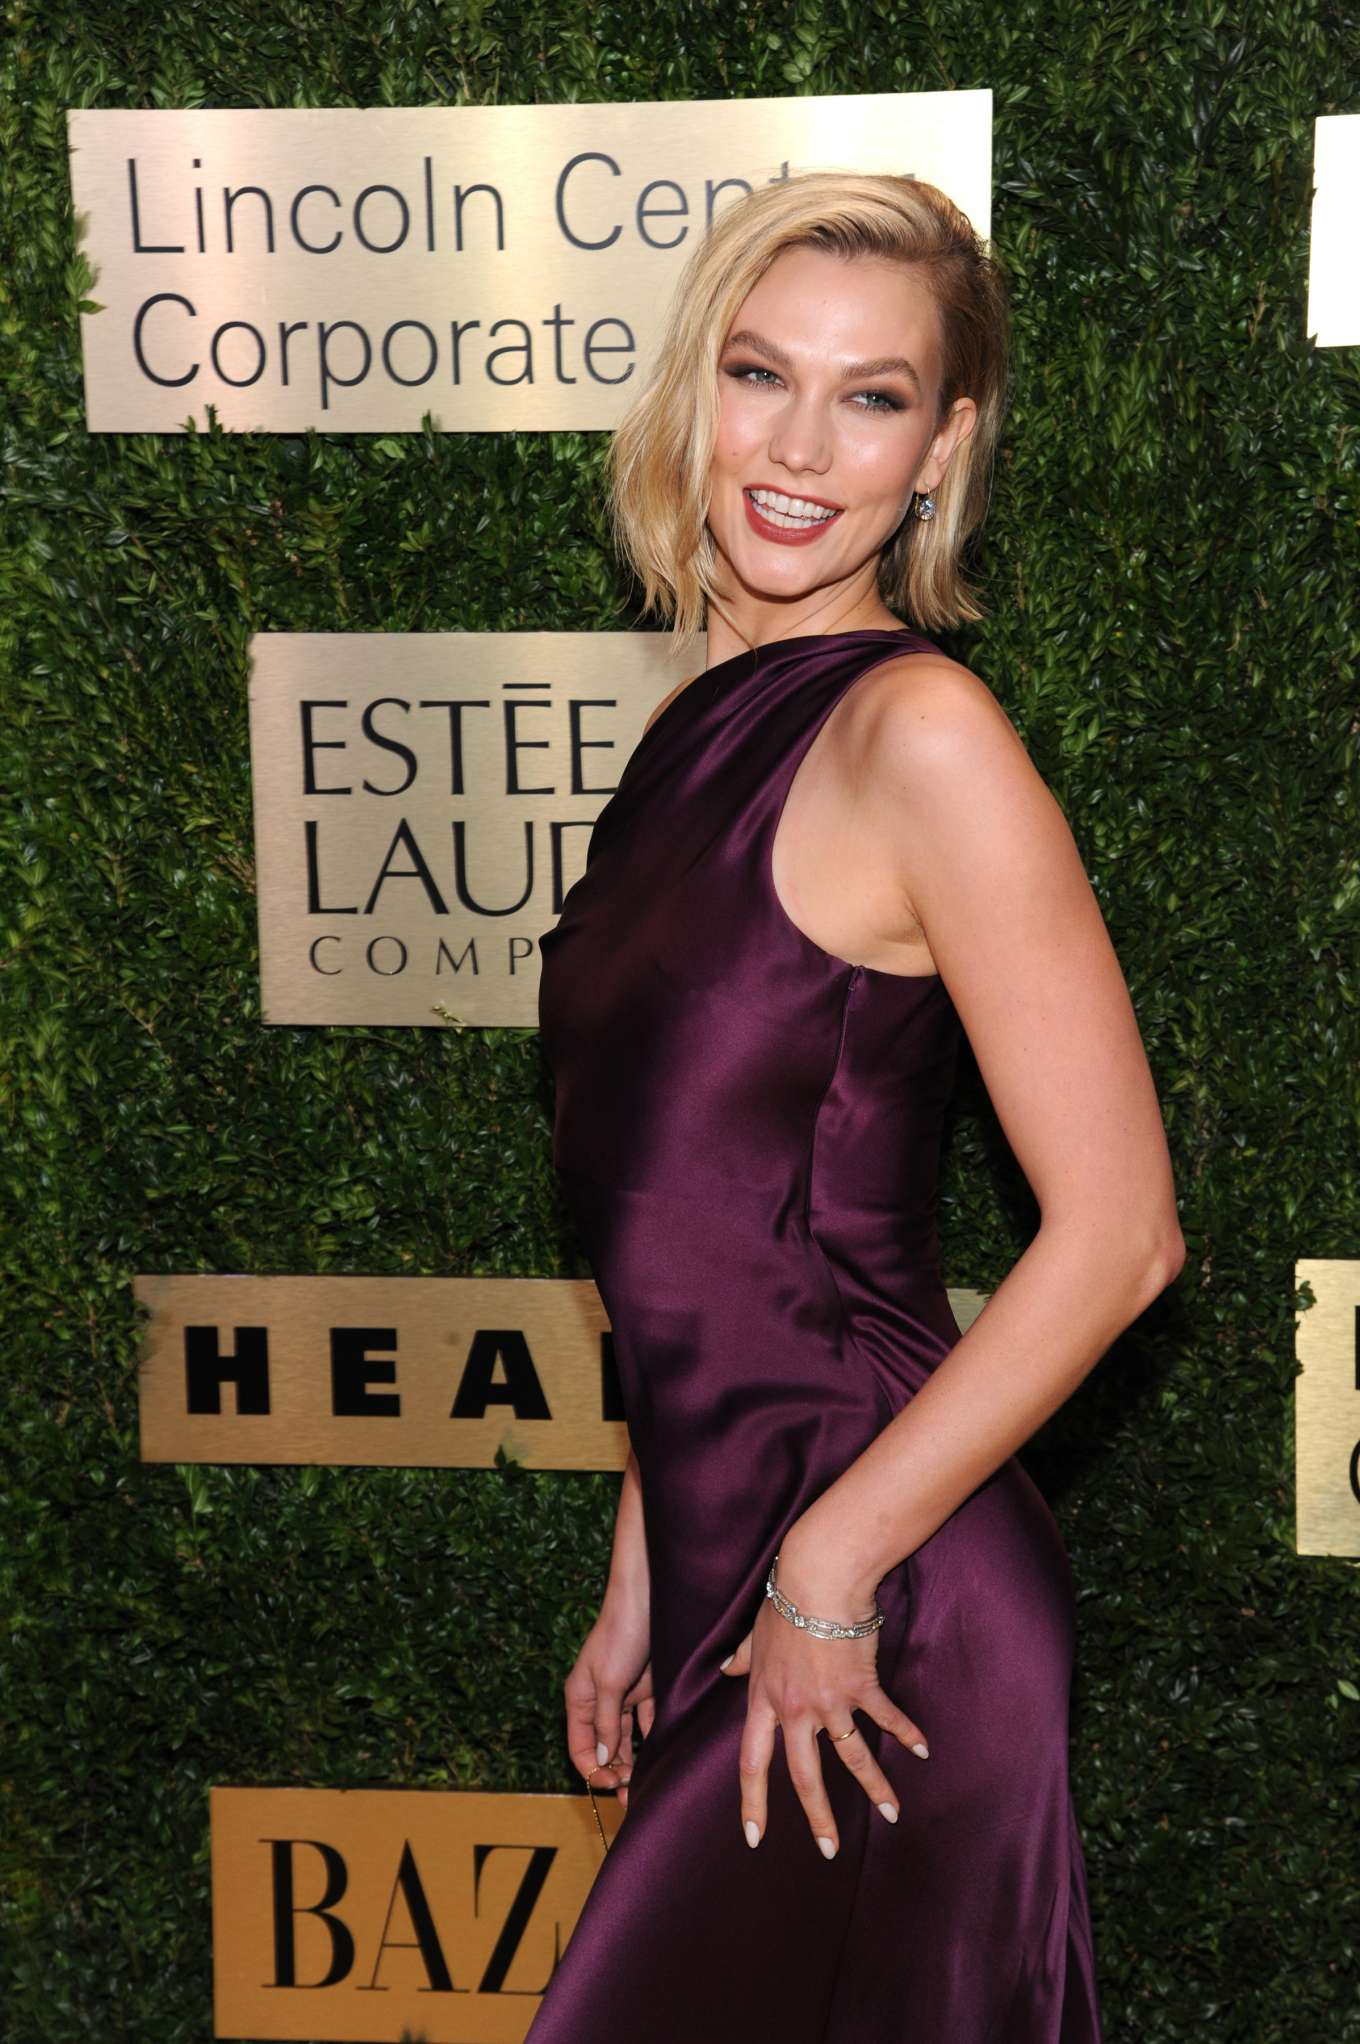 Karlie Kloss - Attends the Lincoln Center Corporate Fashion Fund Gala in New York City